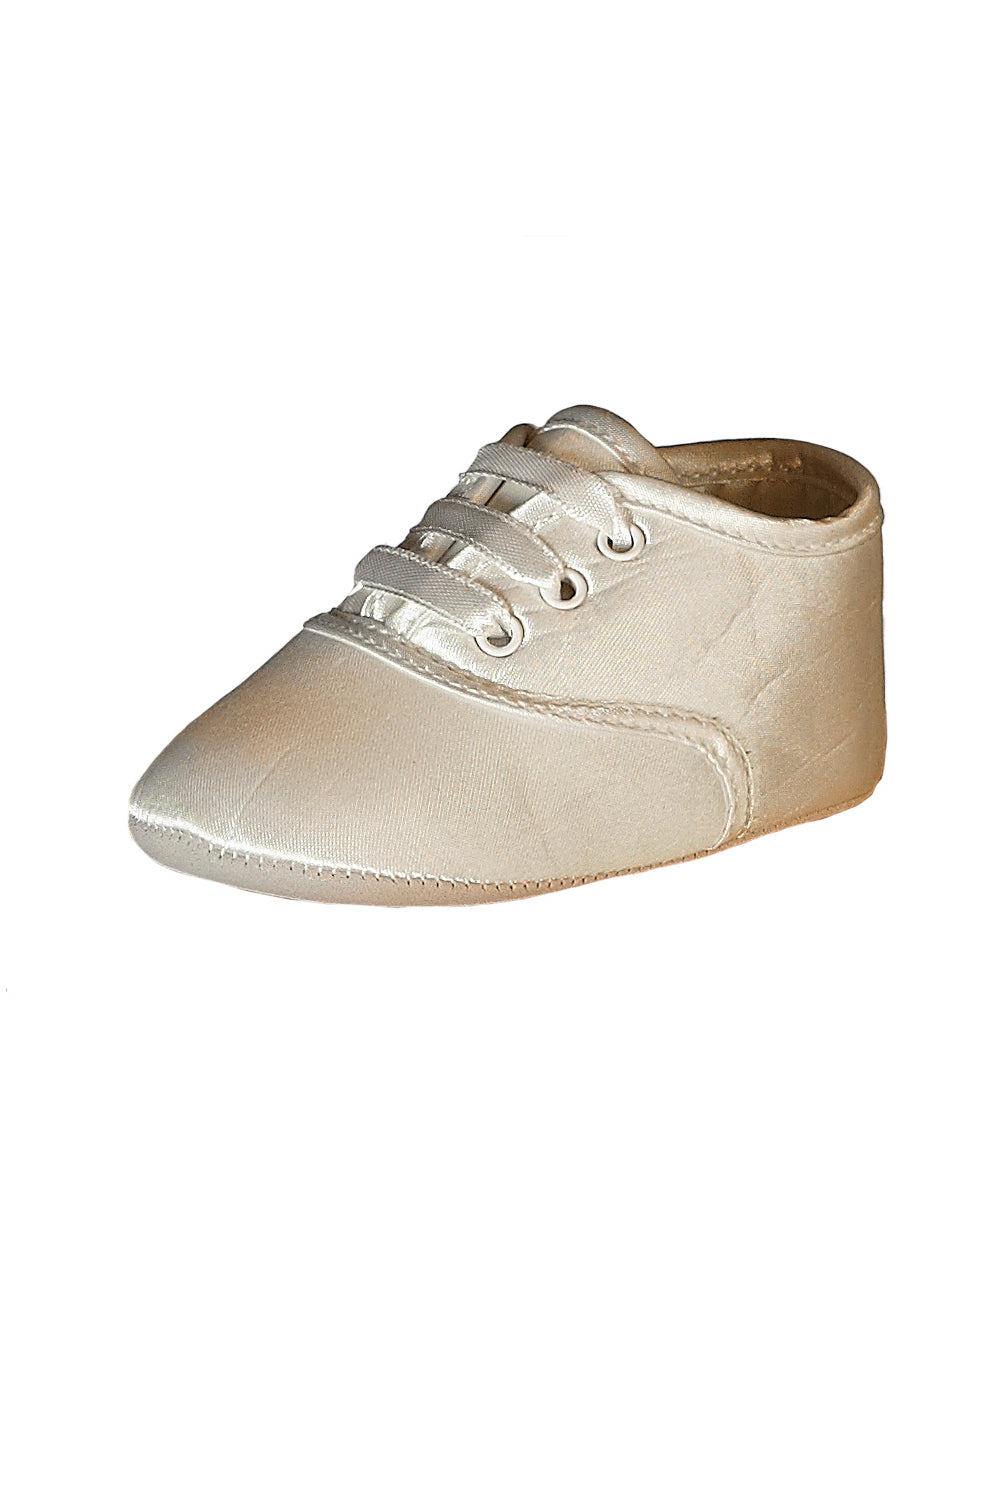 Gideon Silk - Lace Up Ivory Baby Shoe